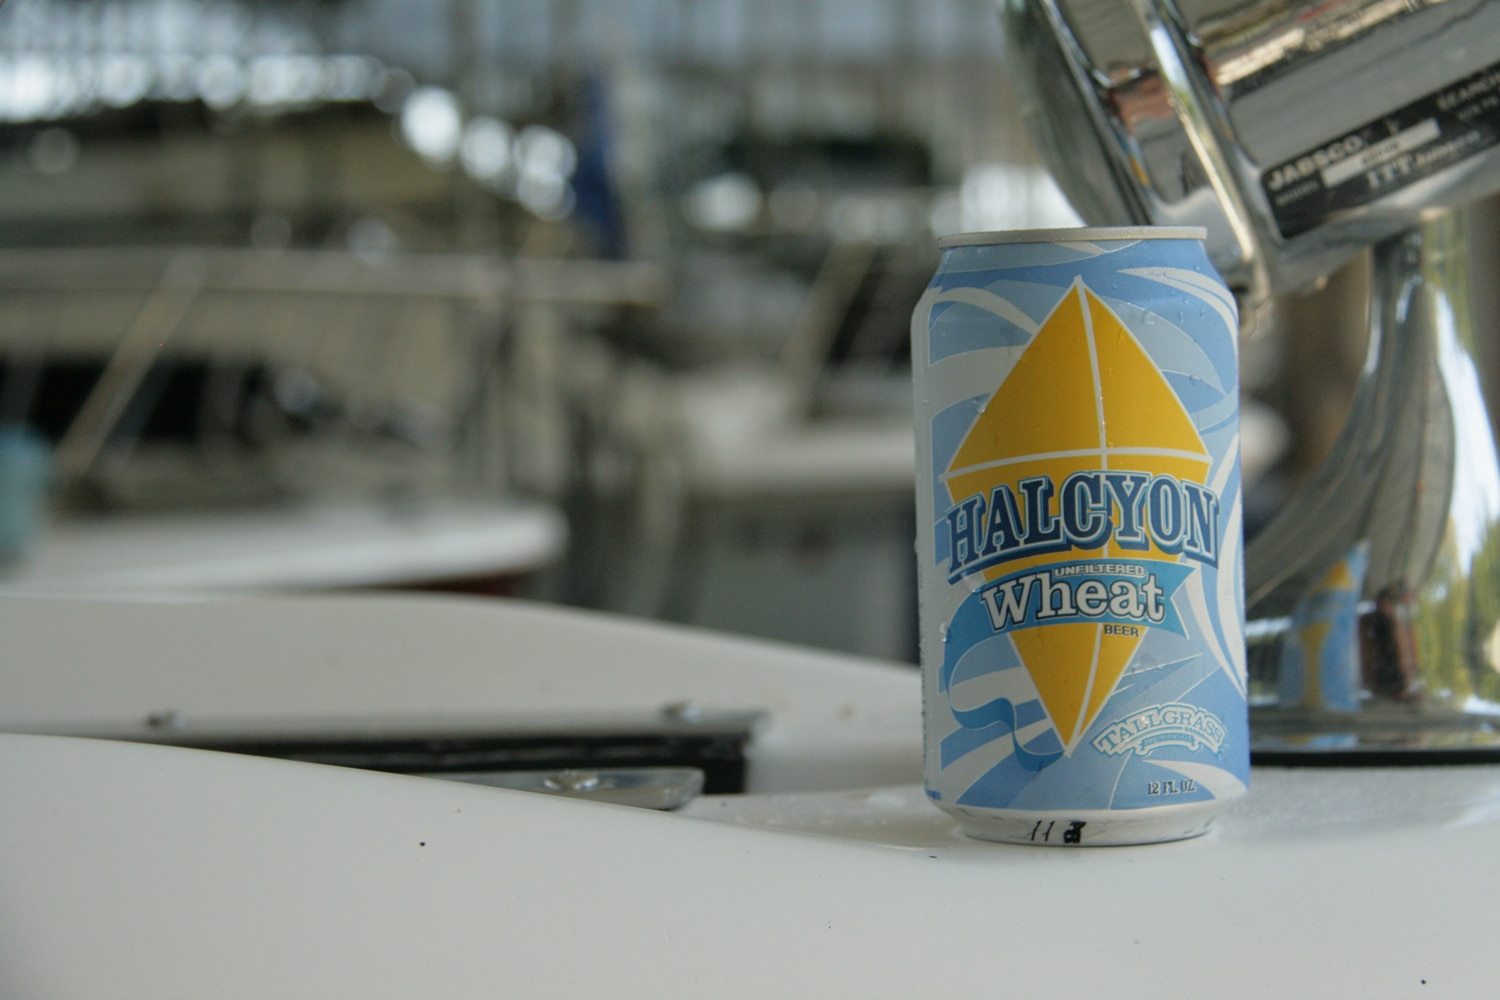 Halcyon from Tallgrass is an American pale wheat ale craft summer beer.